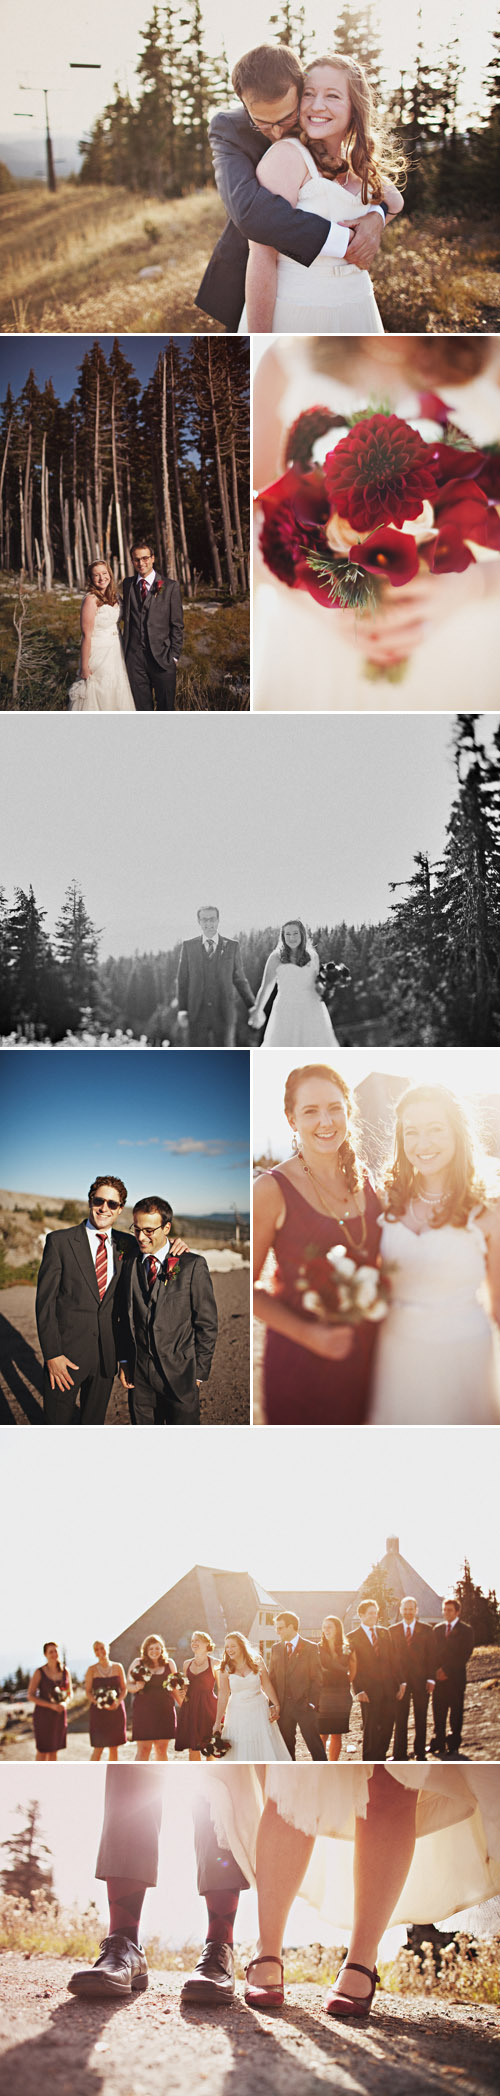 mt. hood, oregon real wedding, images by sean flanigan photography